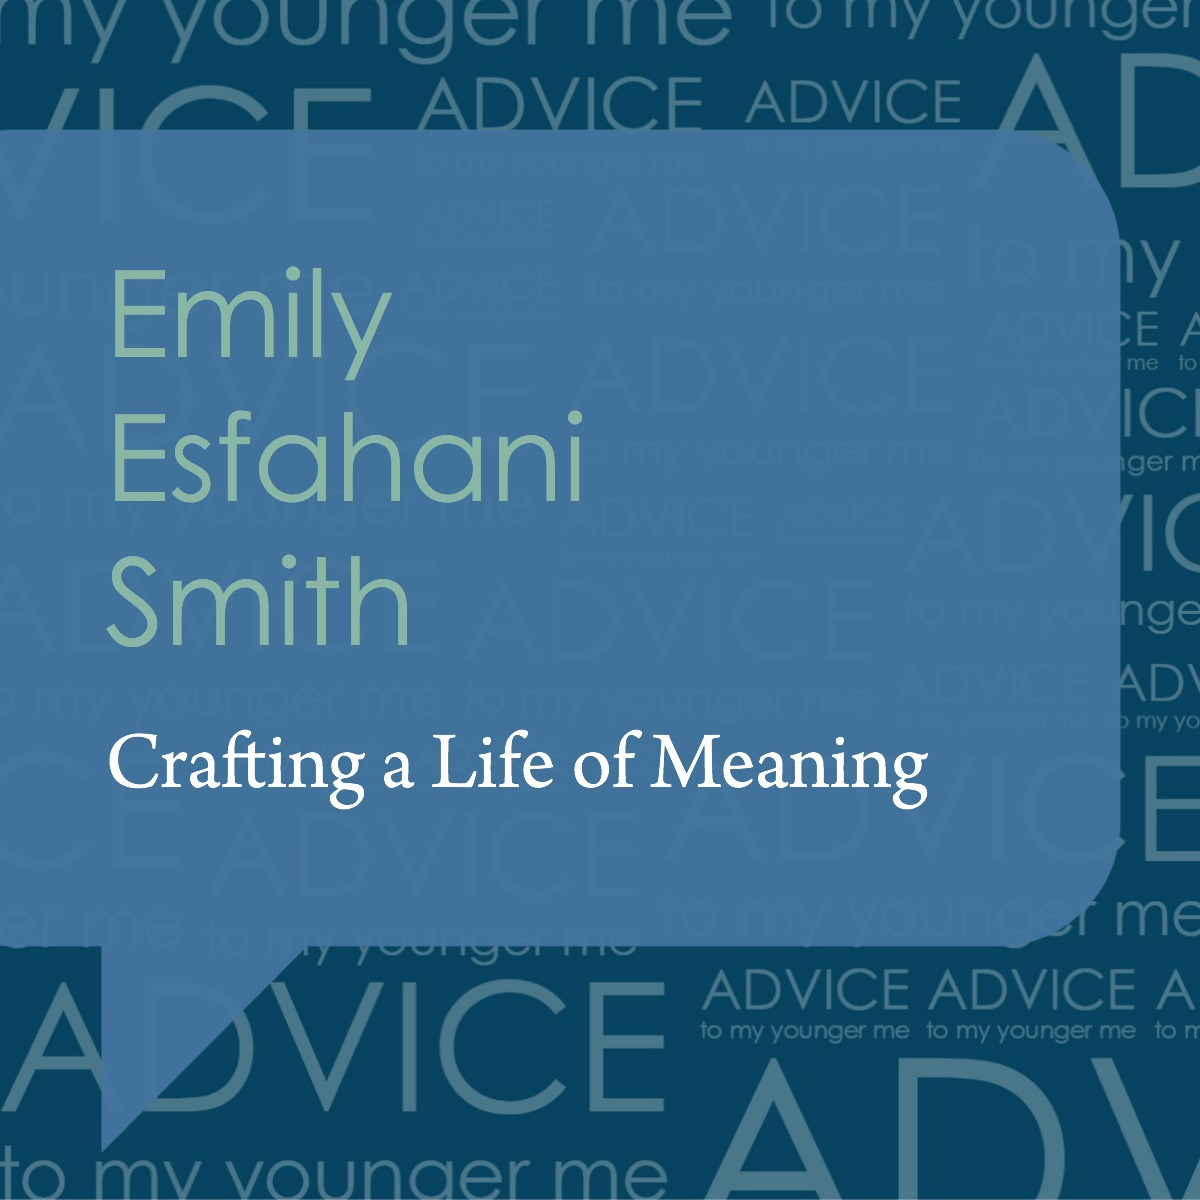 Worksheets Advice Meaning episode 32 crafting a life of meaning with emily esfahani smith smith